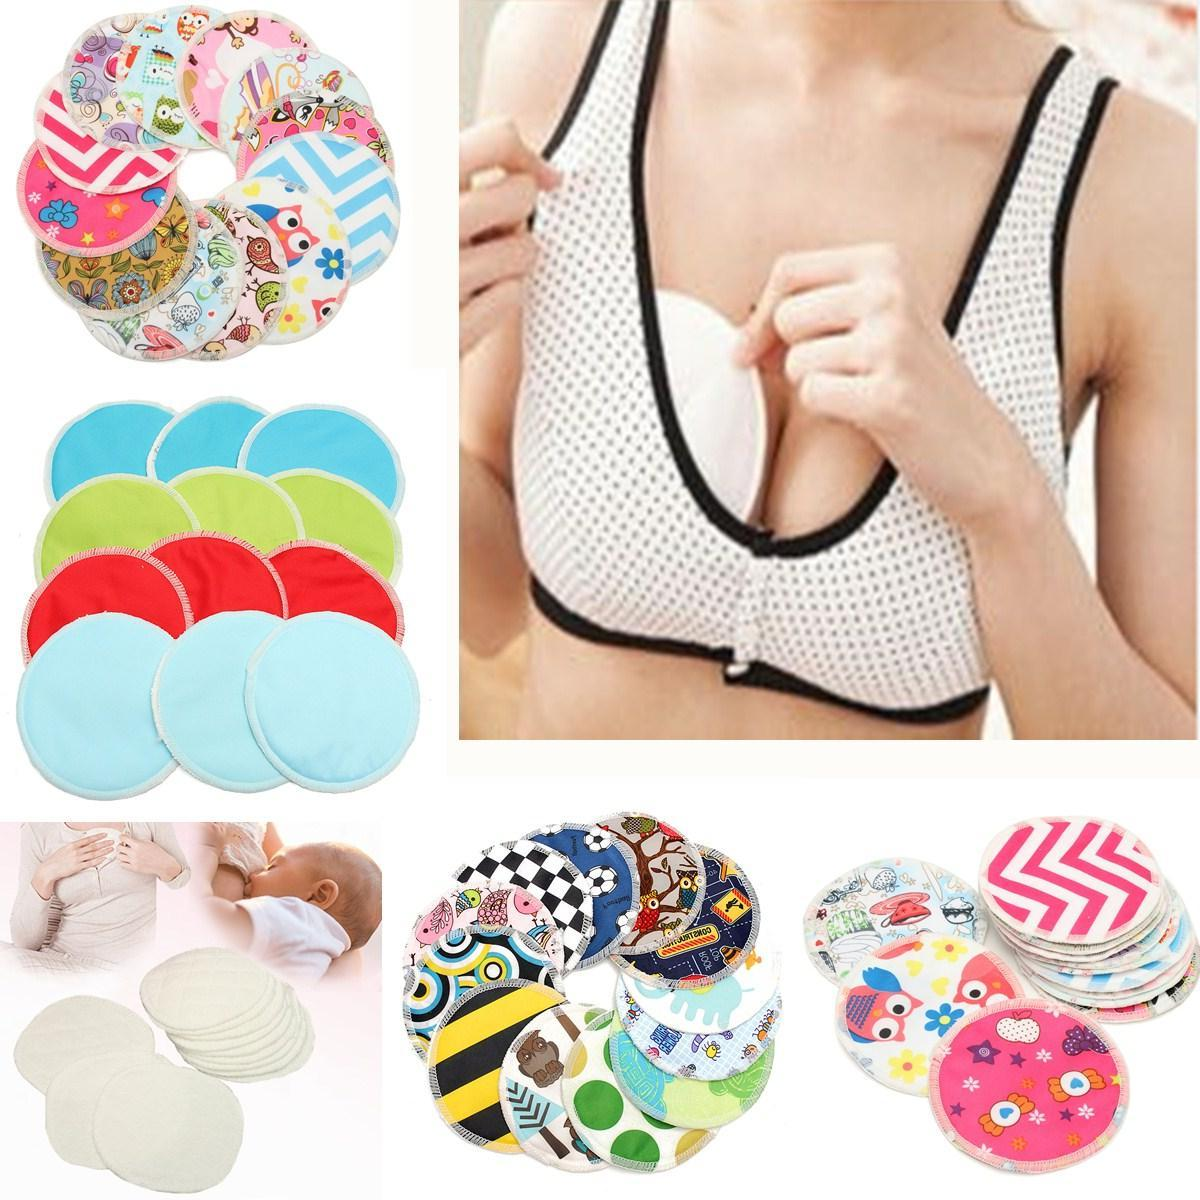 12pcs set absorbent bamboo nursing pads